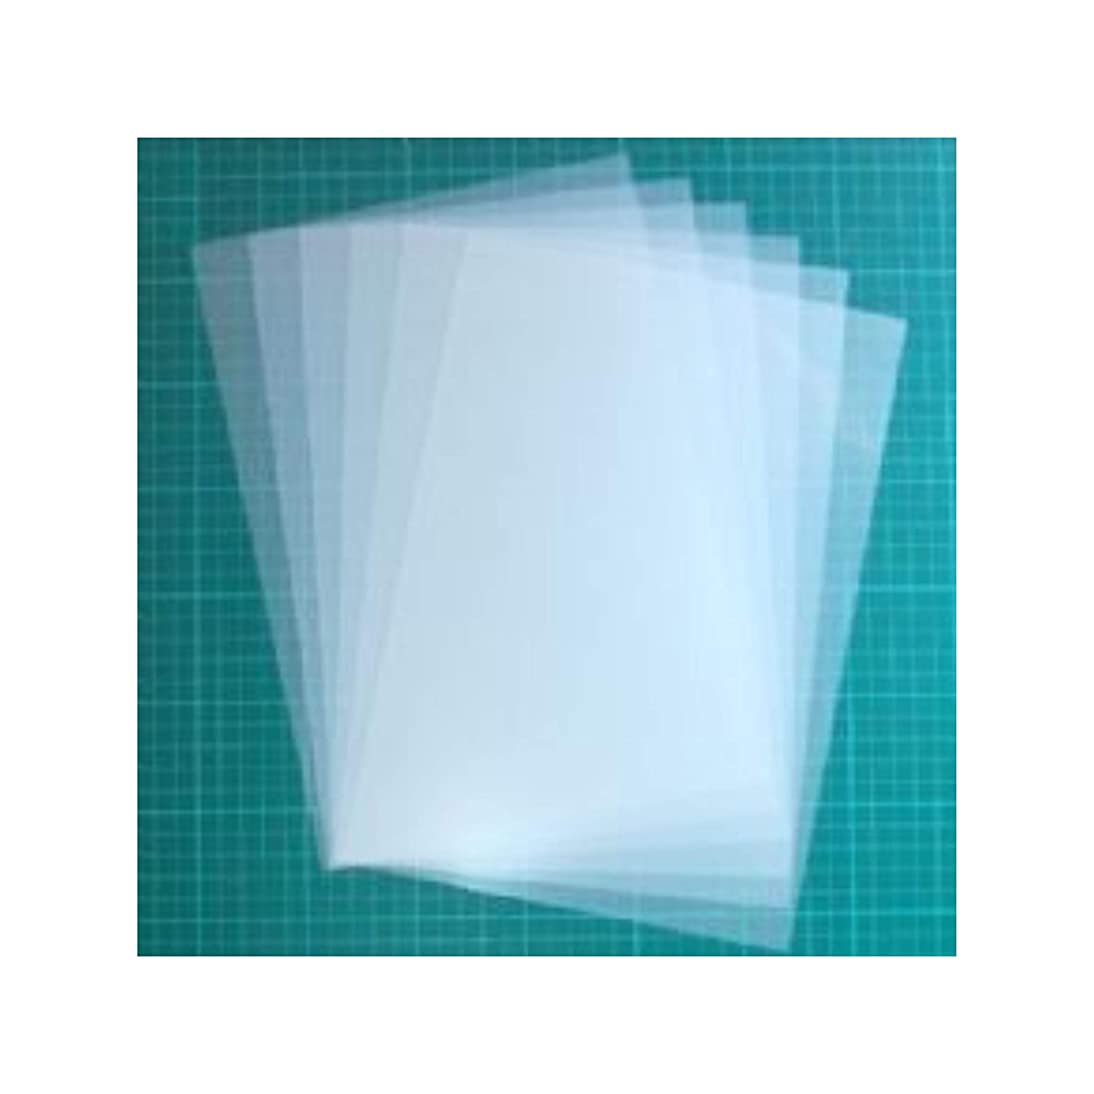 Stencil Material 4 mil Blank Mylar - 13 Sheets of Mylar for Reusable Stencils – Cut Your Own Stencils and Use on Walls, Floors, Fabrics, Glass, Wood and More...